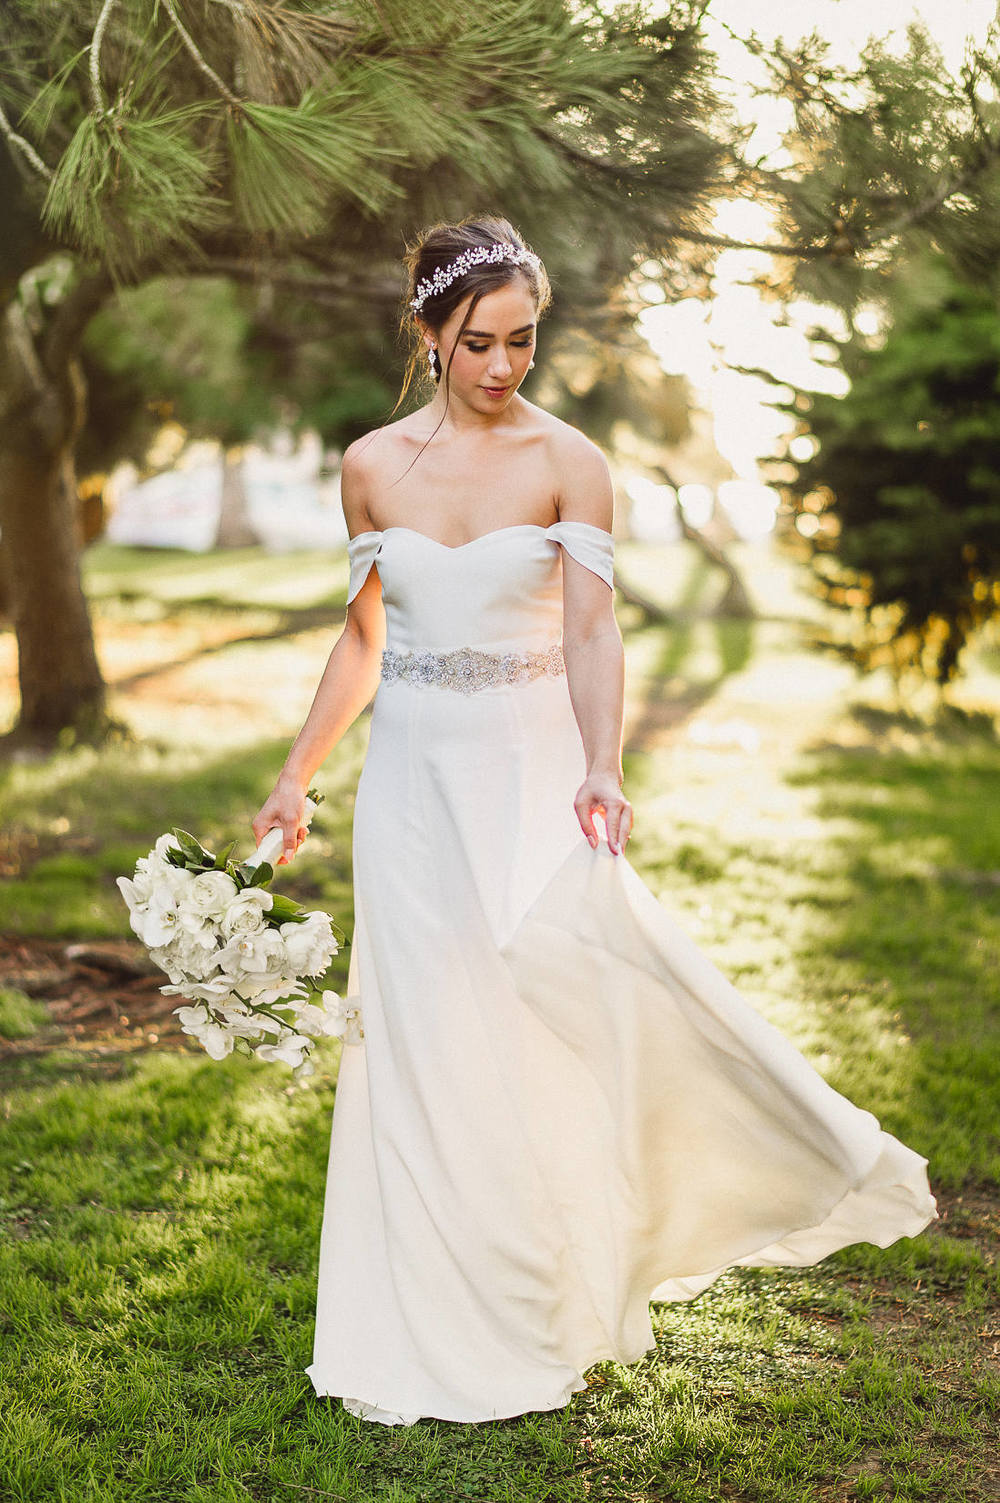 la-jolla-scripps-browning-park-bride-photos